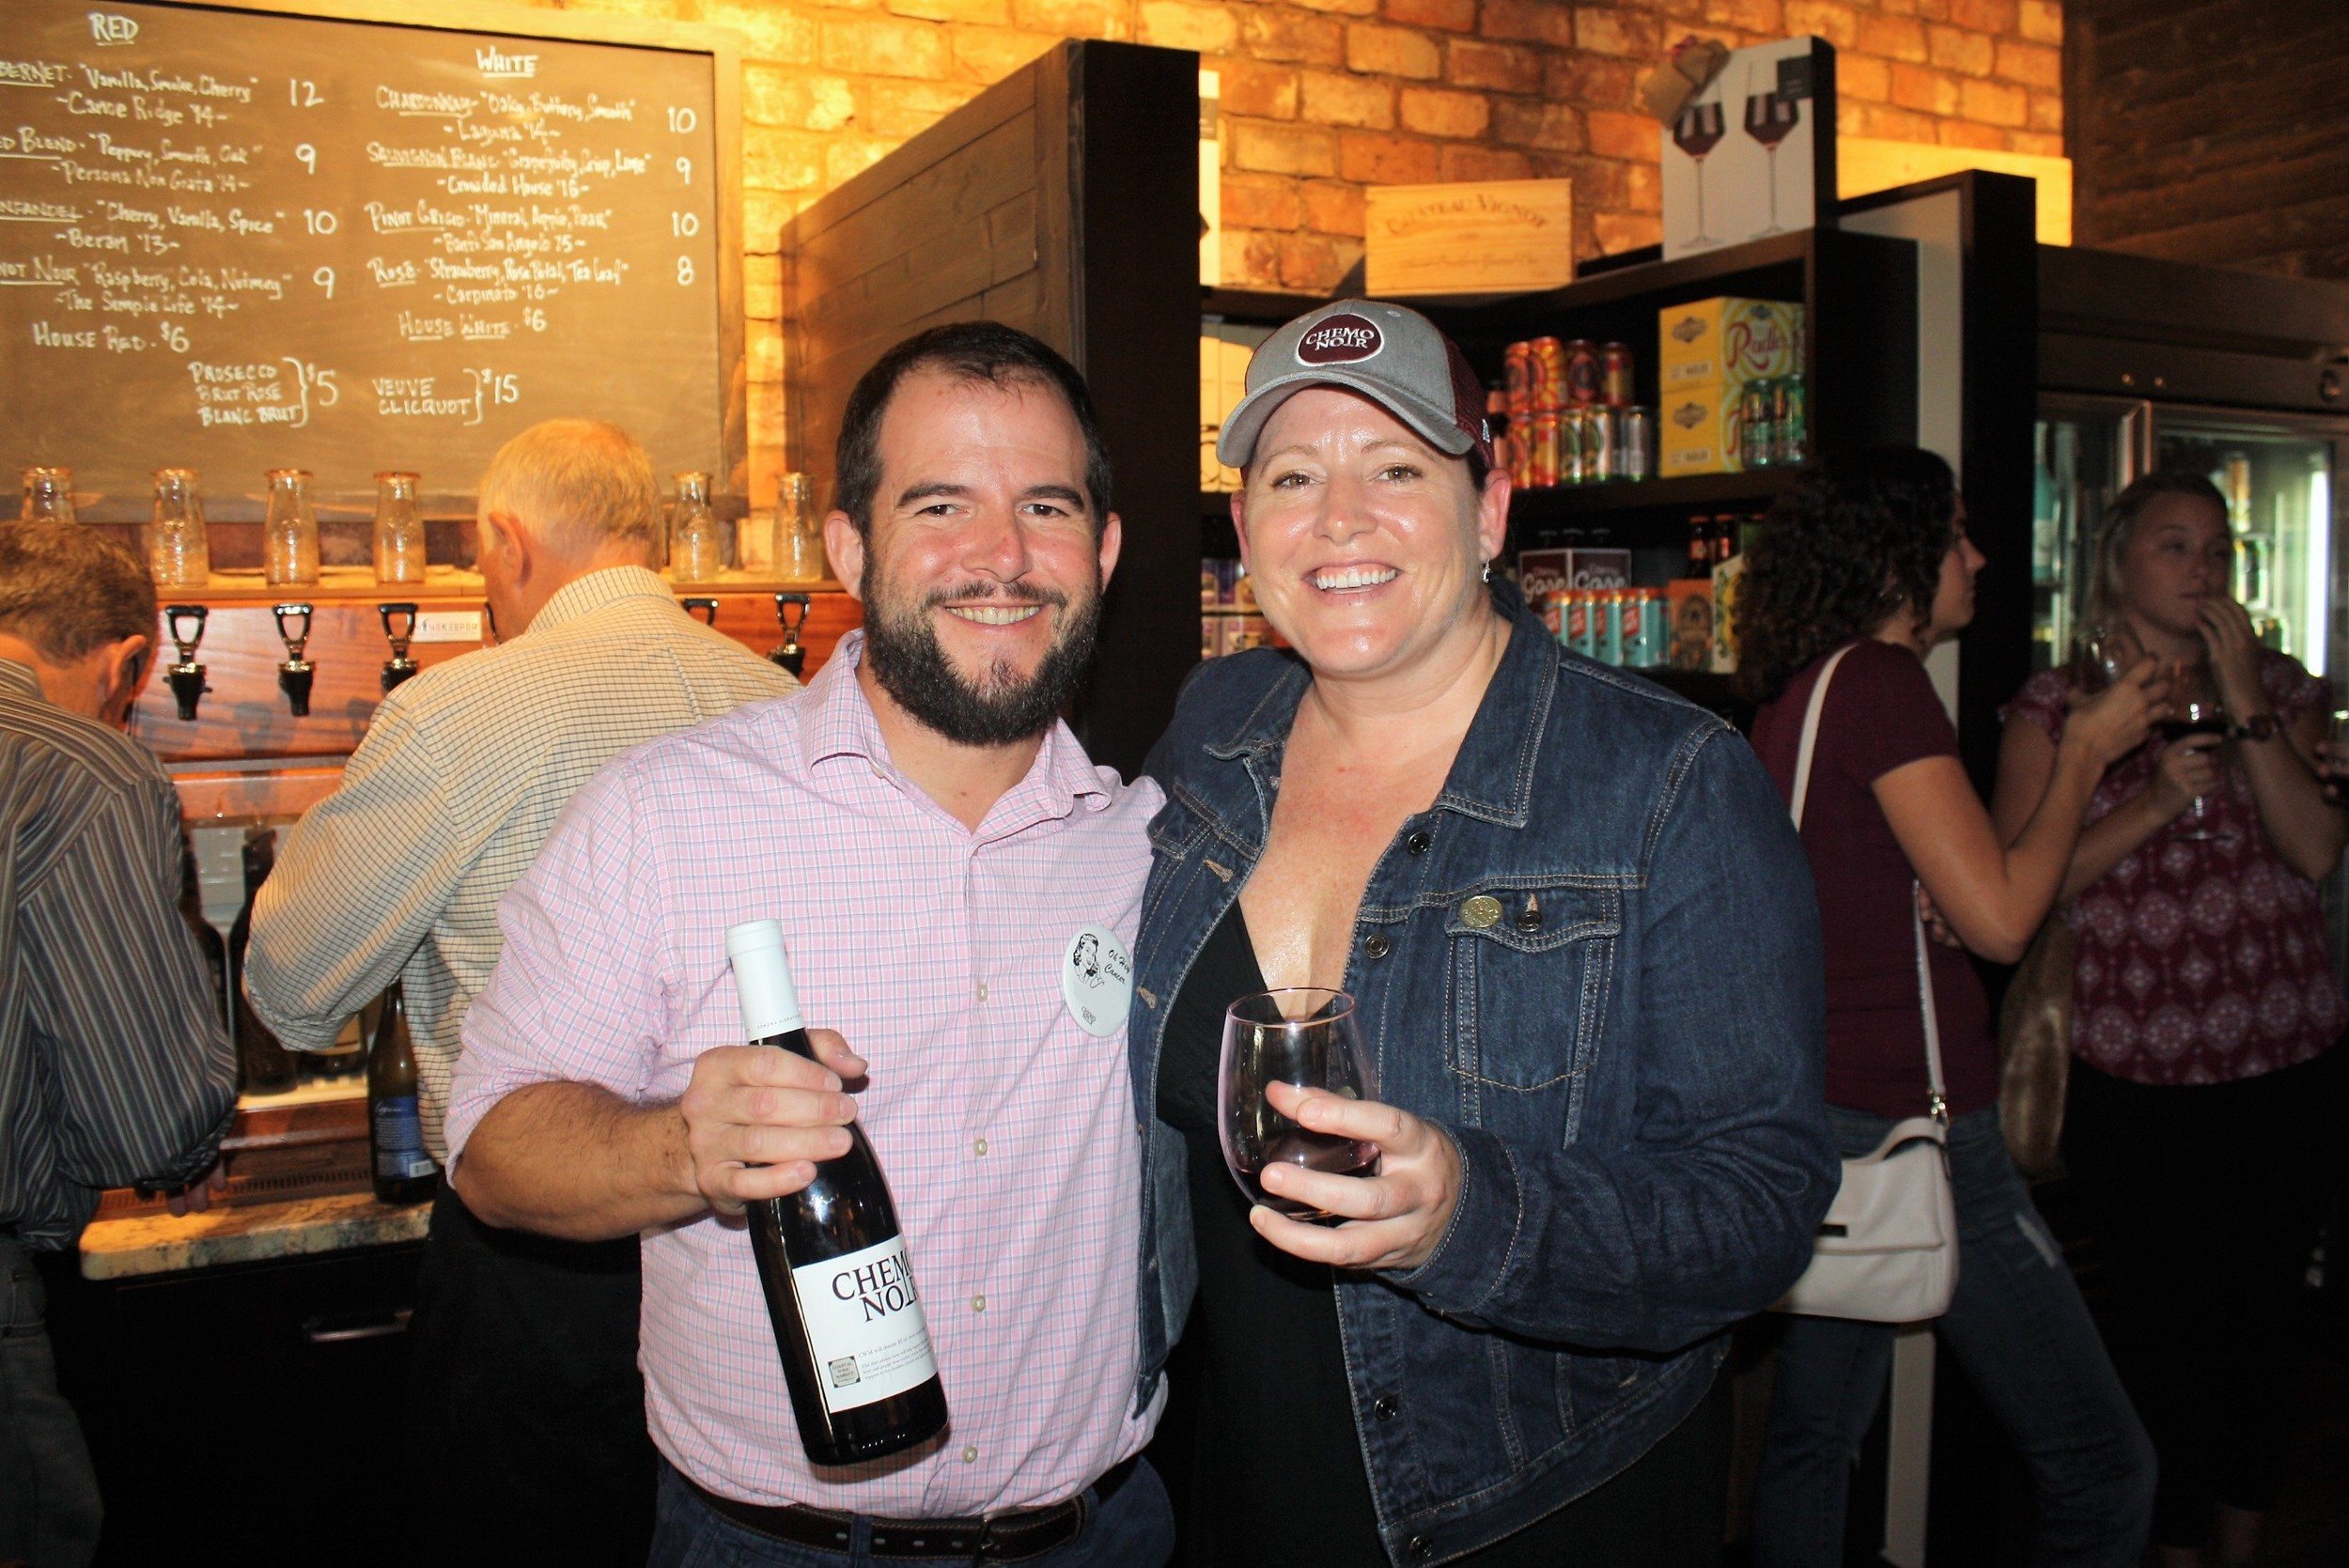 Coastal Wine Market & Tasting Room Co-owner Steve Lourie gathers with Chemo Noir Founder and Chairman Katrin Casey.